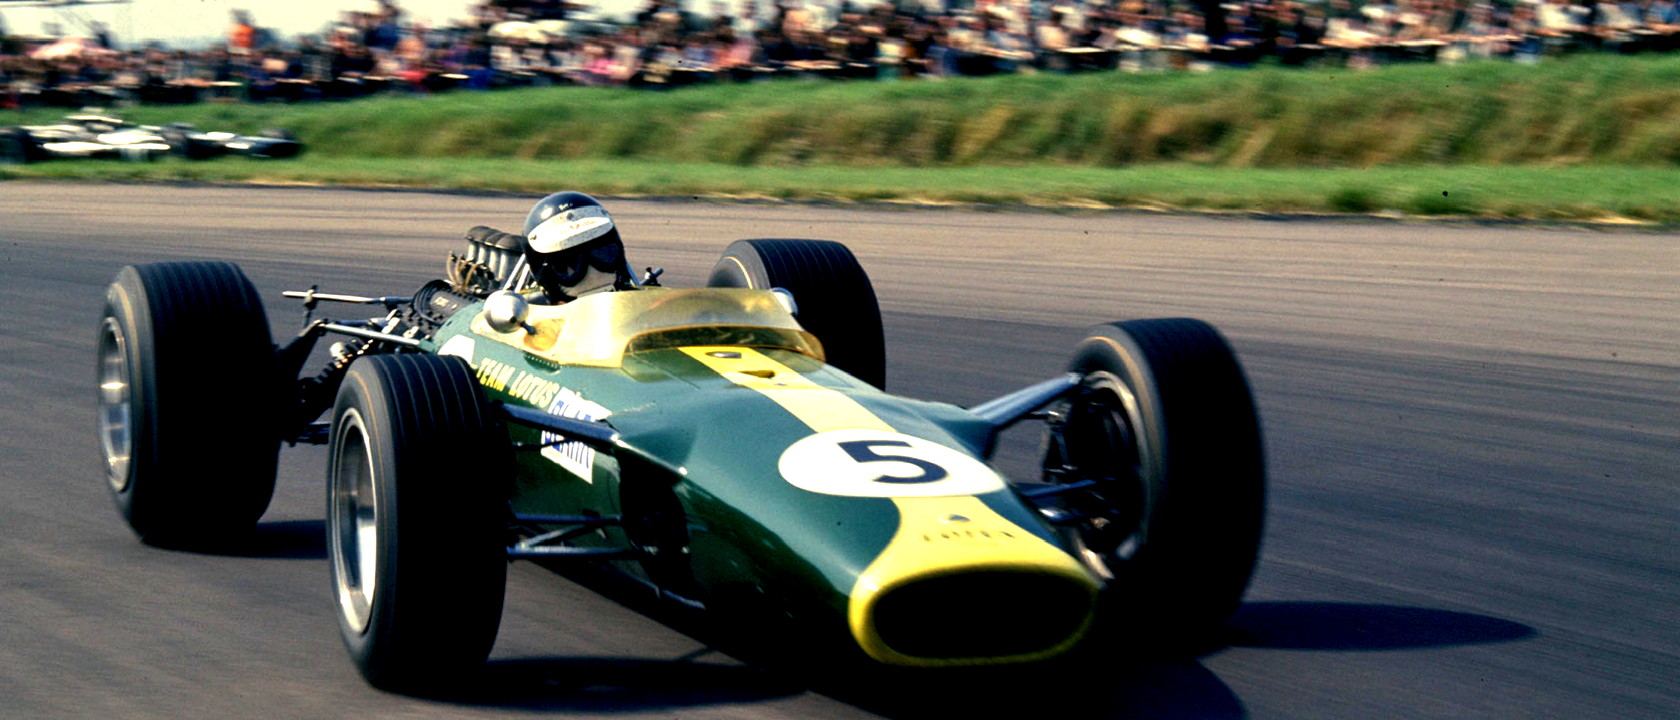 Top 15 All-Time Drivers | Formula One Art & Genius